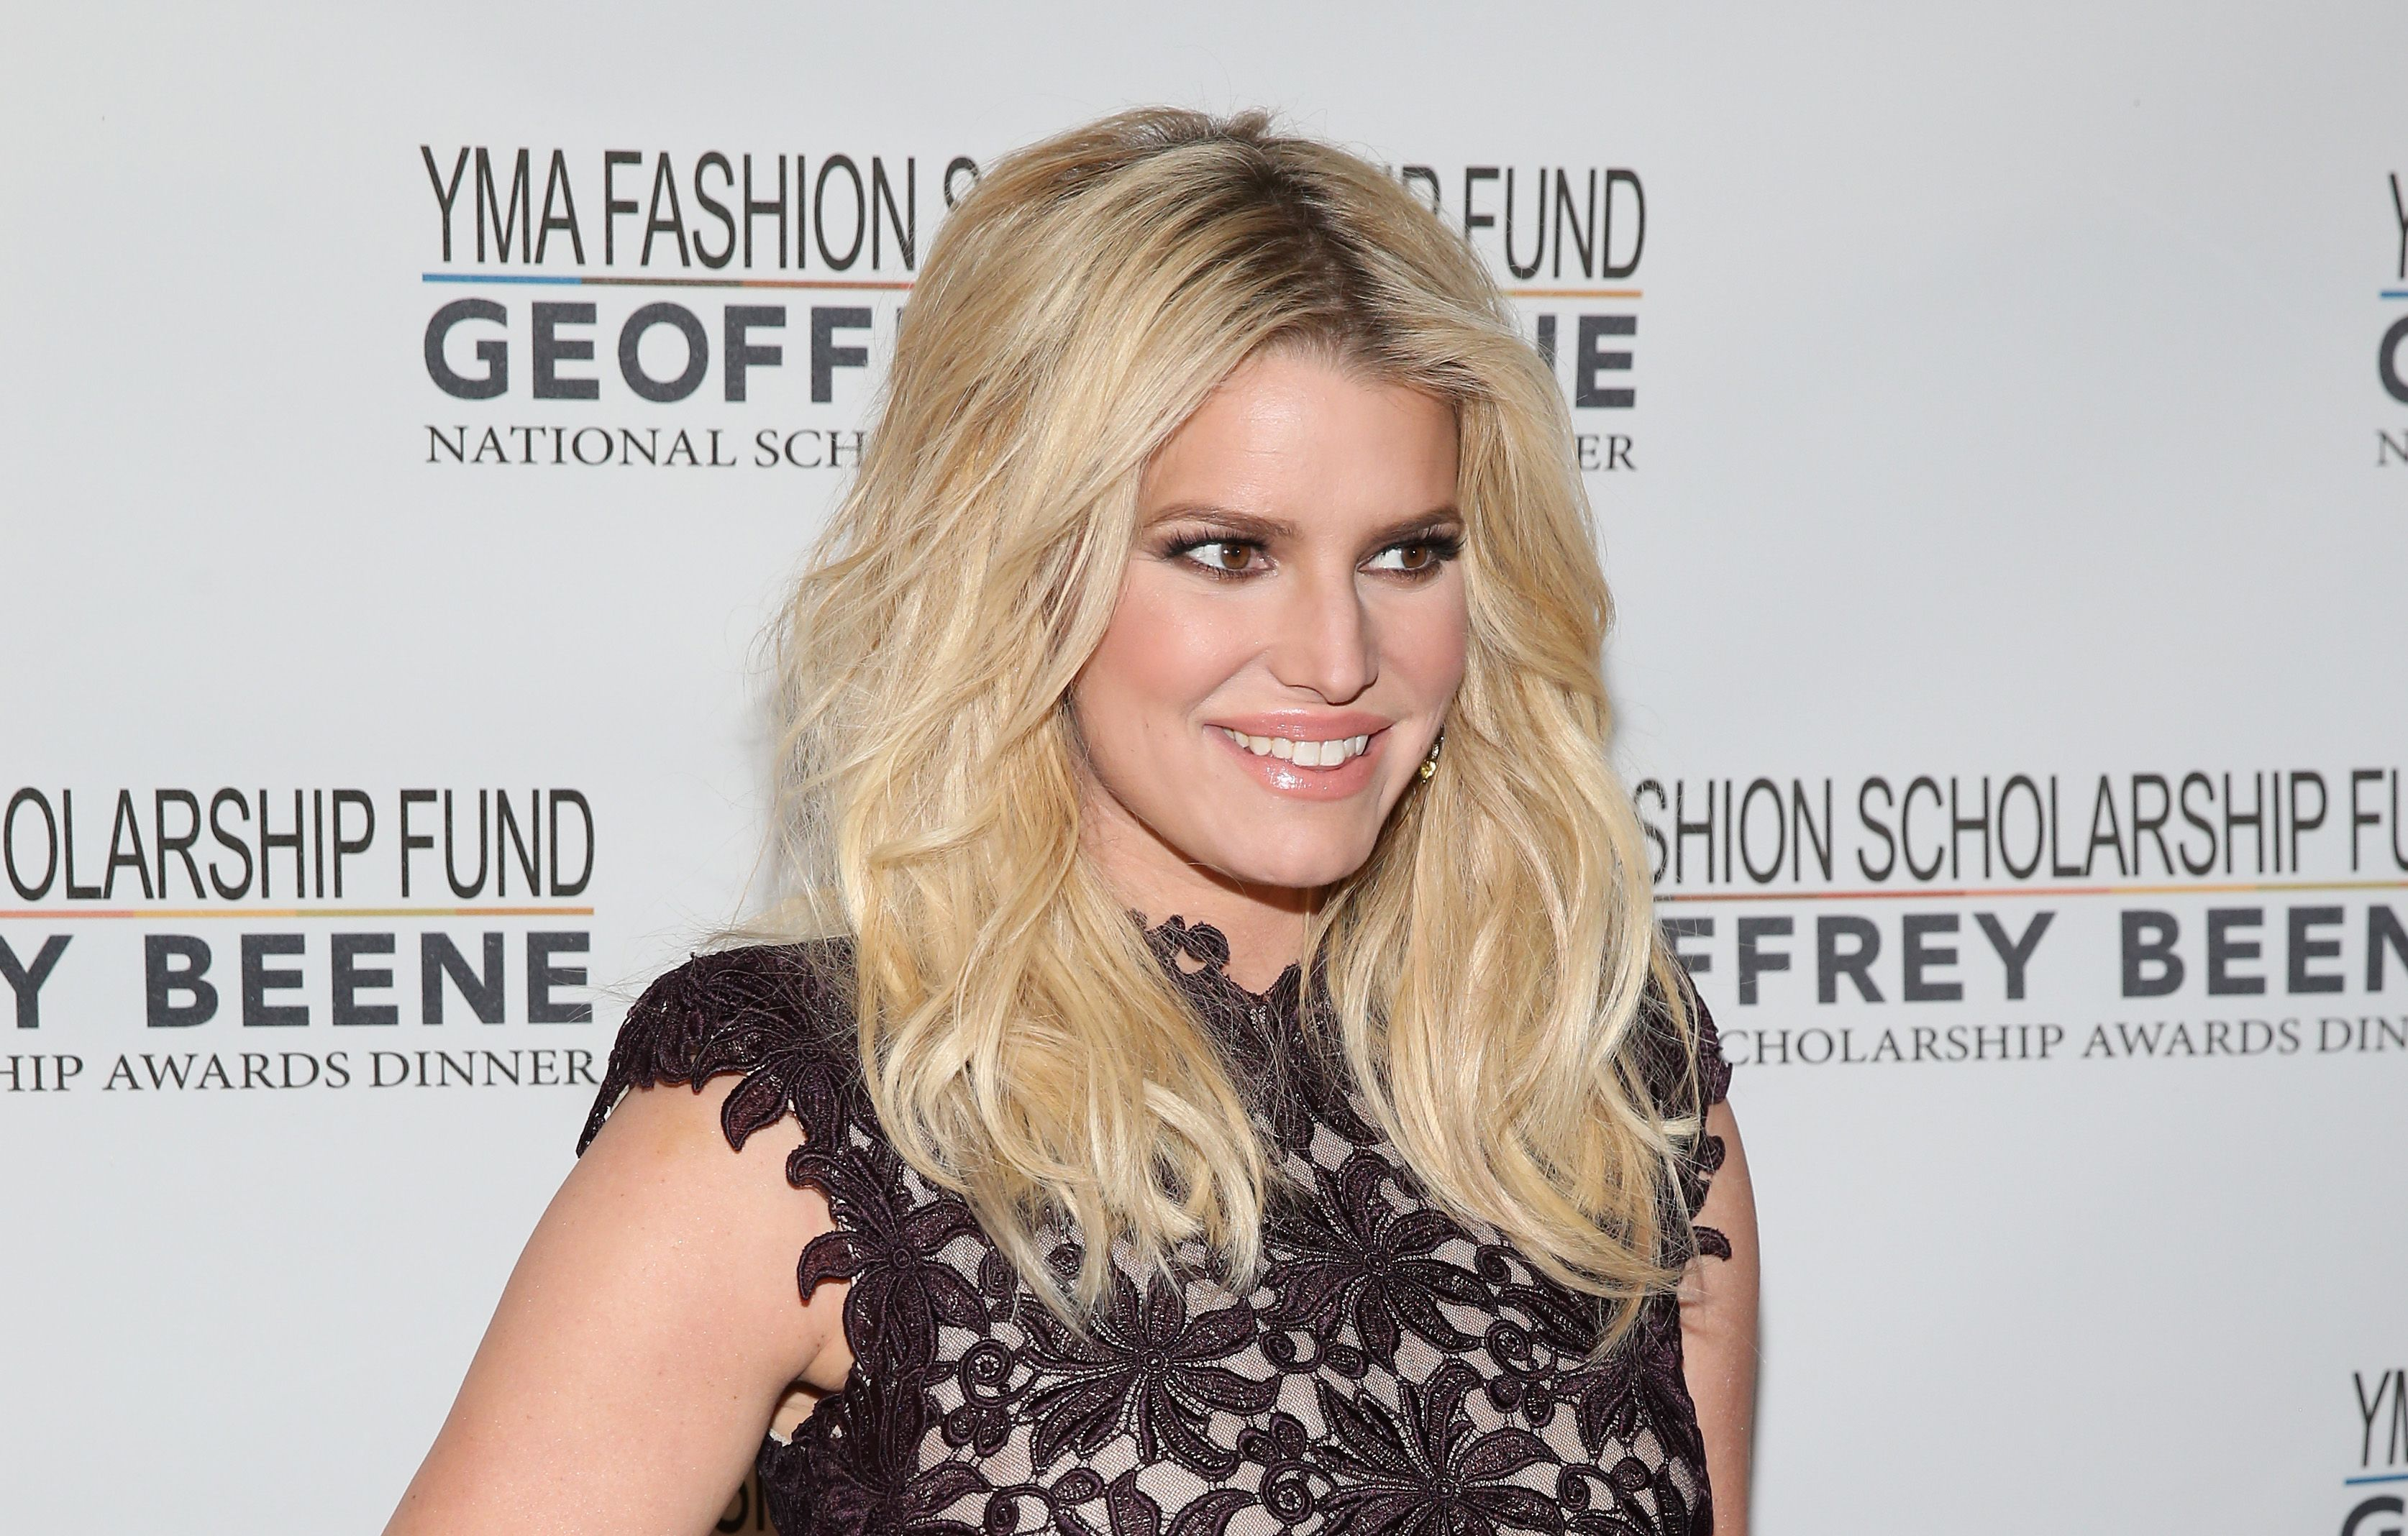 Jessica Simpson at YMA Fashion Scholarship Fund Geoffrey Beene National Scholarship Awards Gala on January 12, 2016 in New York City   Photo: Getty Images